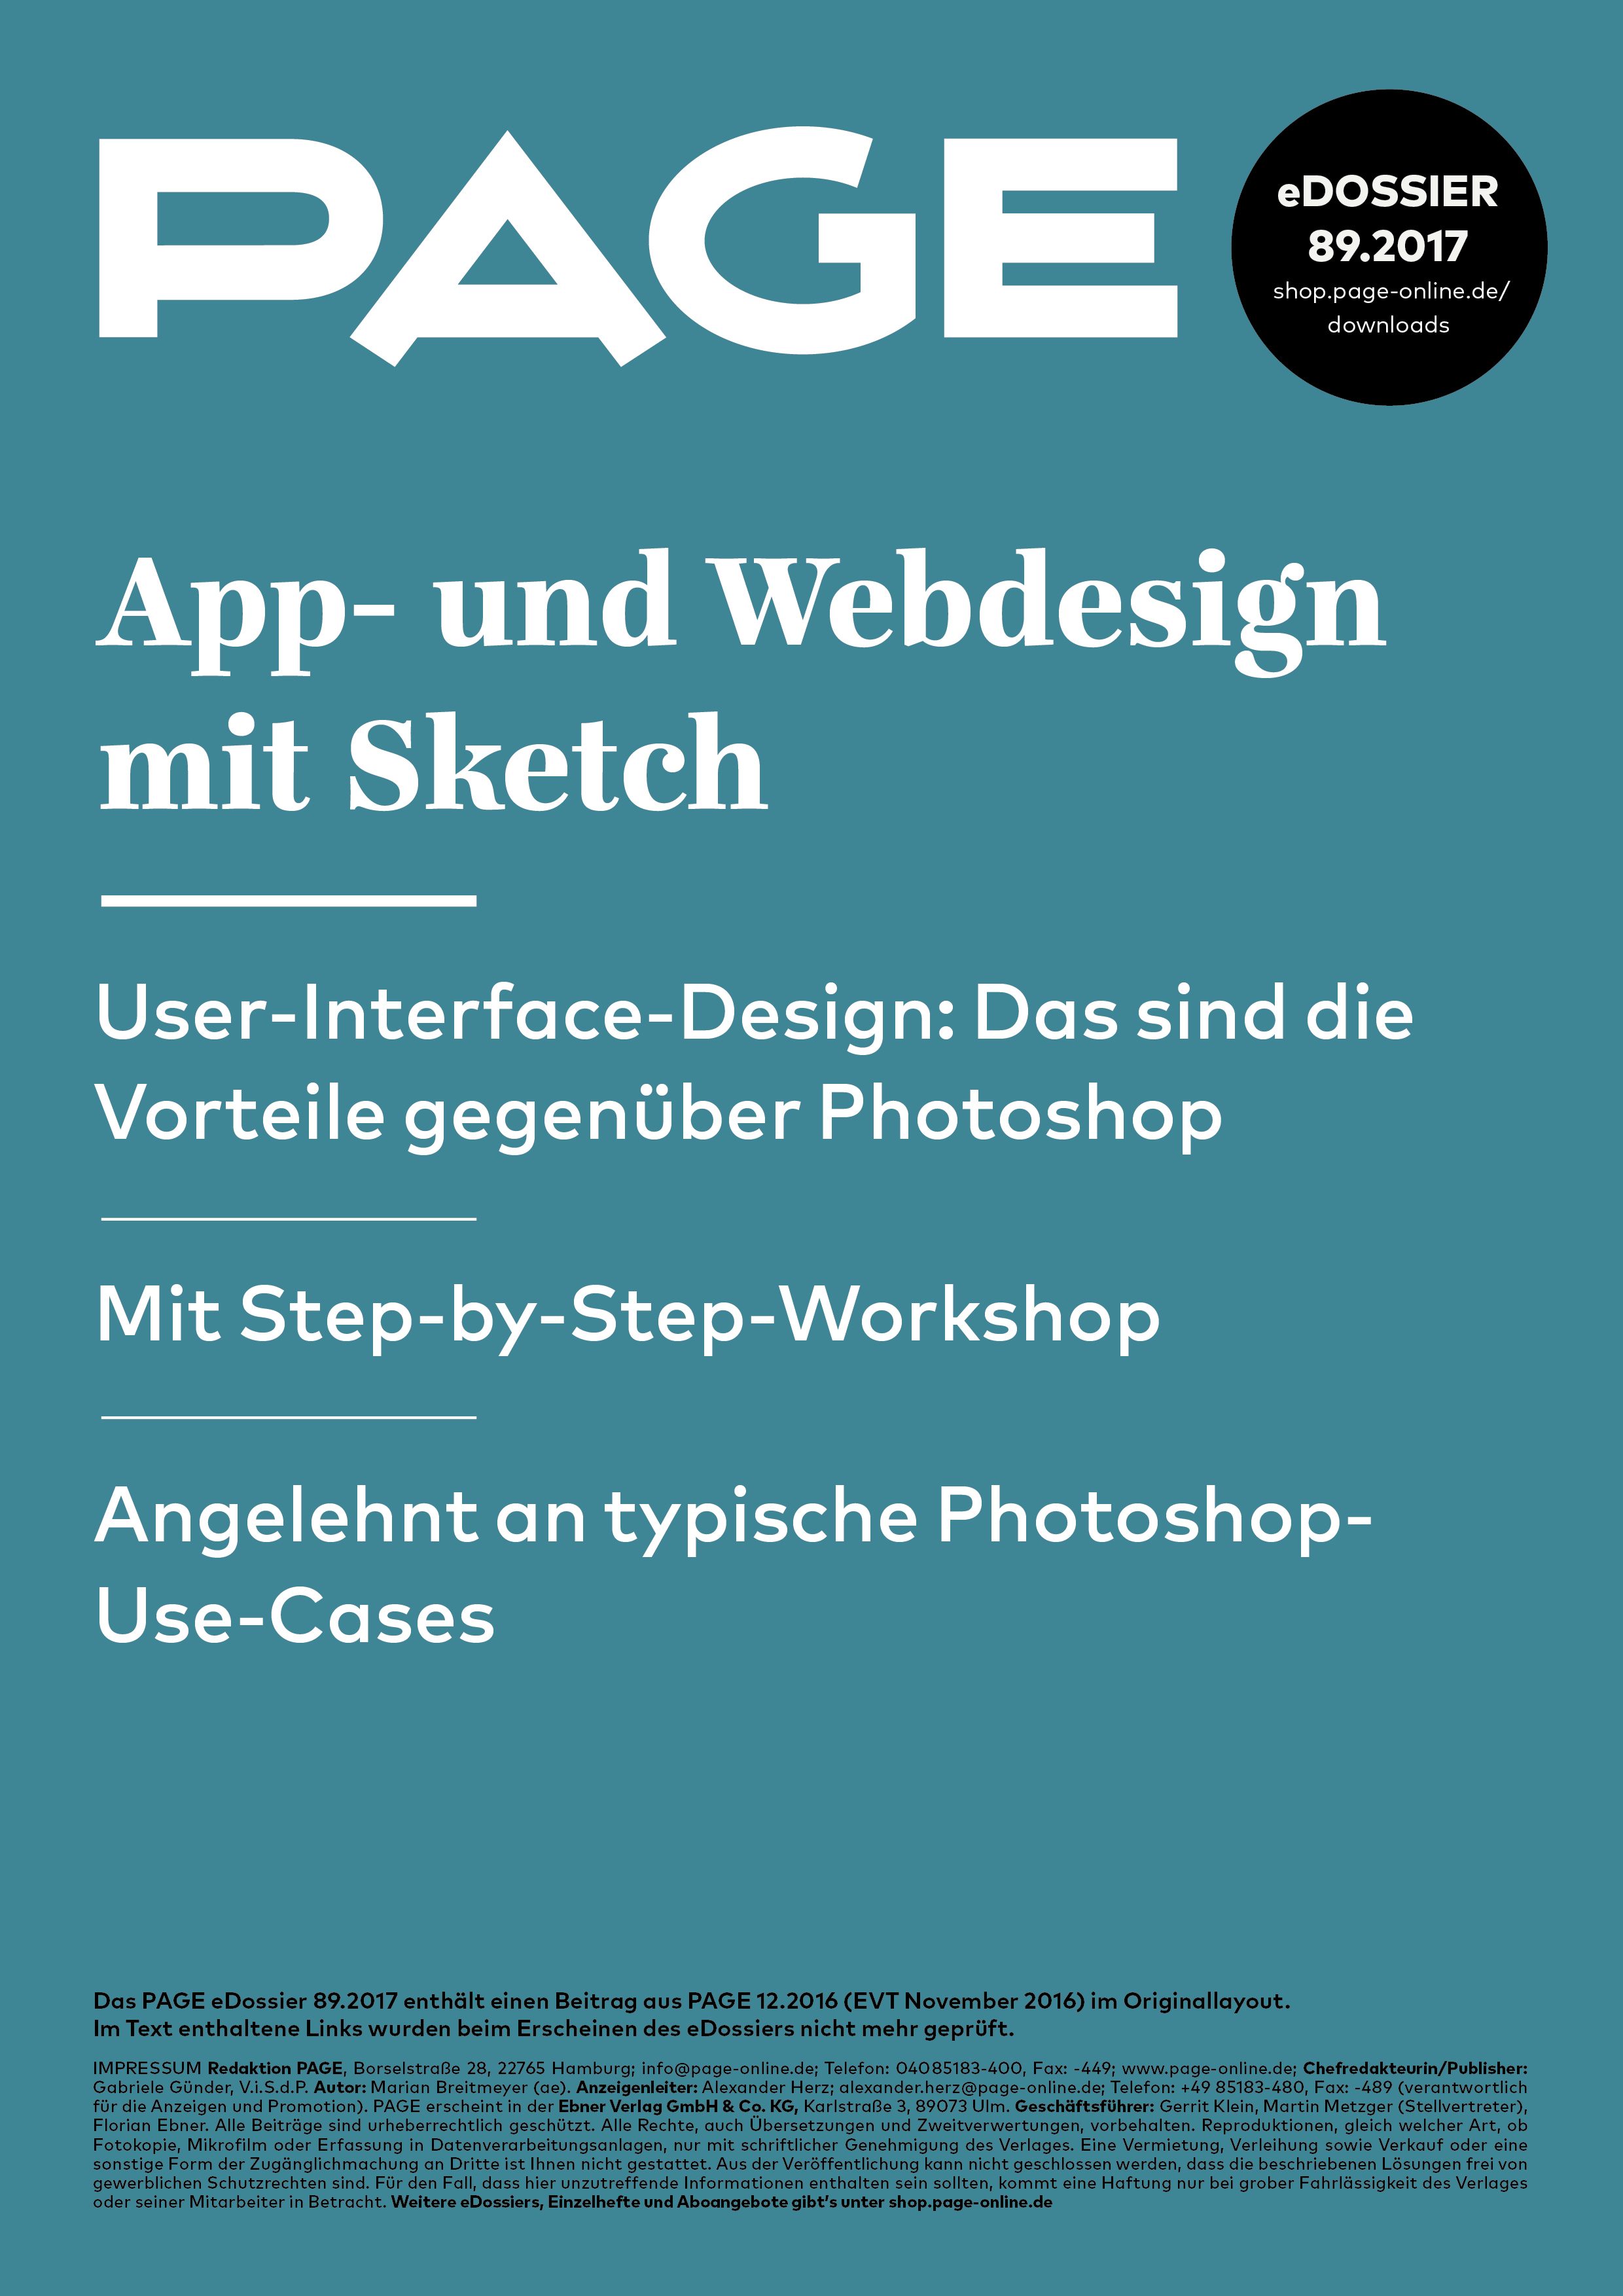 Sketch, Adobe Photoshop, Webdesign, Workshop, Tutorial, App Design, User Interface Design, UI Design